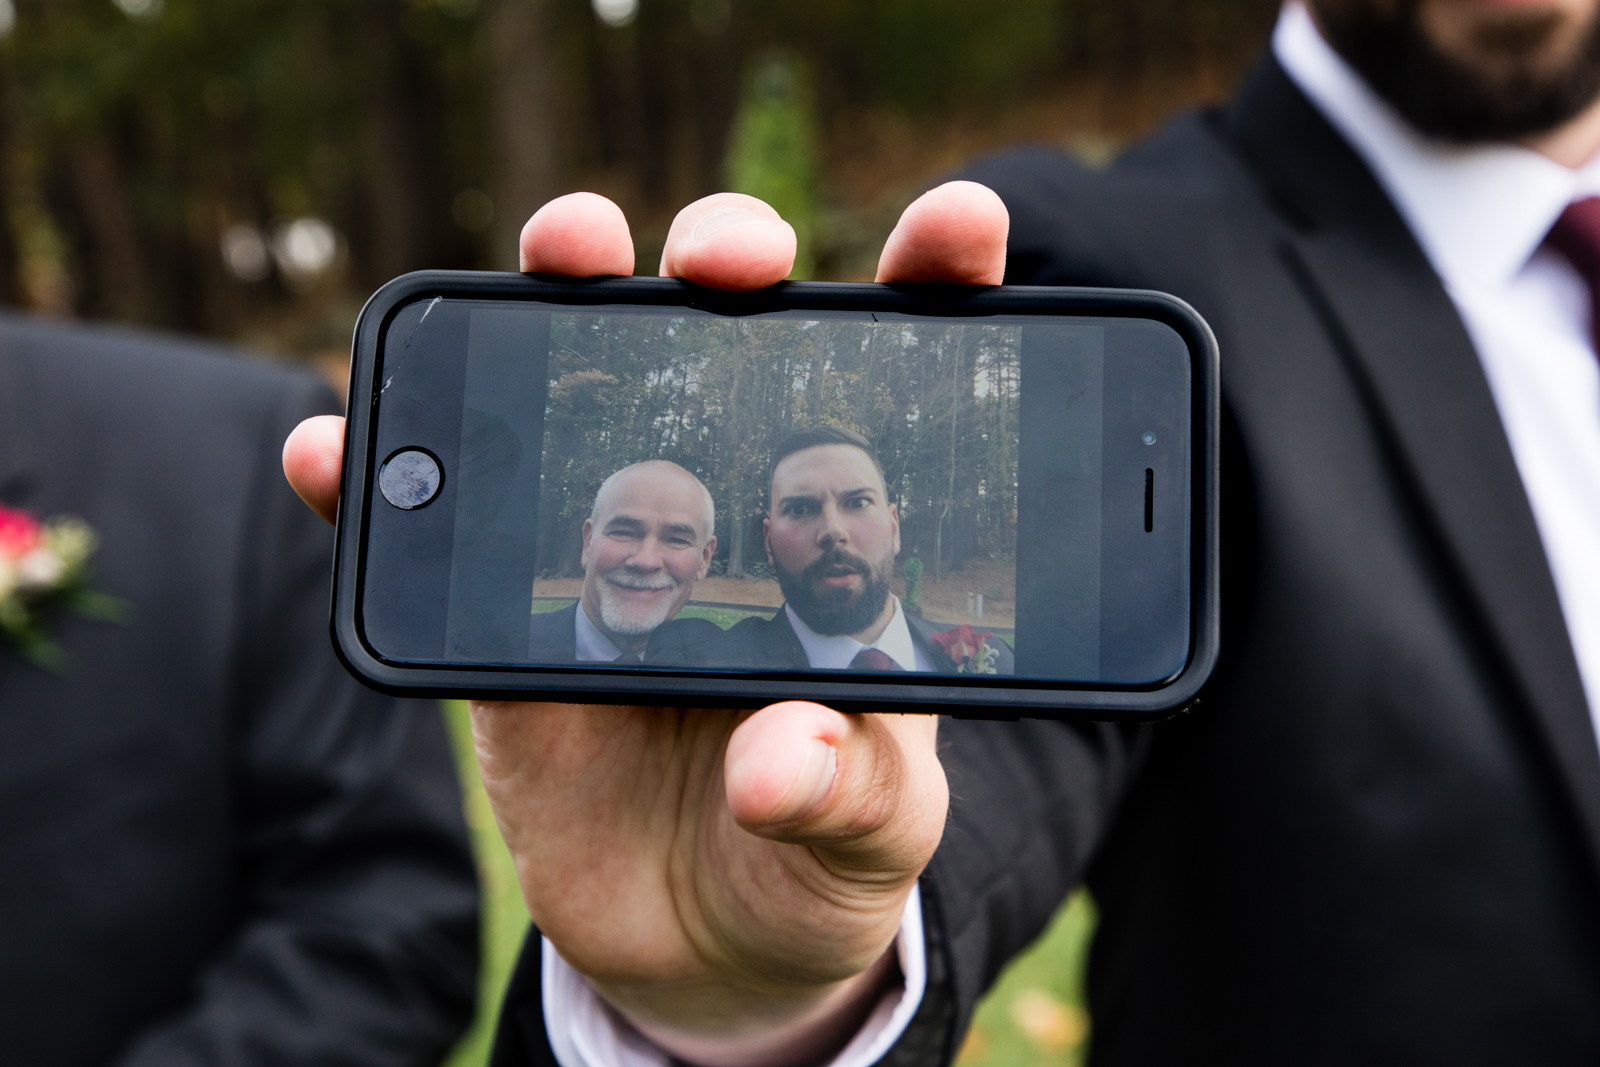 My second shooter really captured the silliness of the groomsmen! Love the selfies shots.